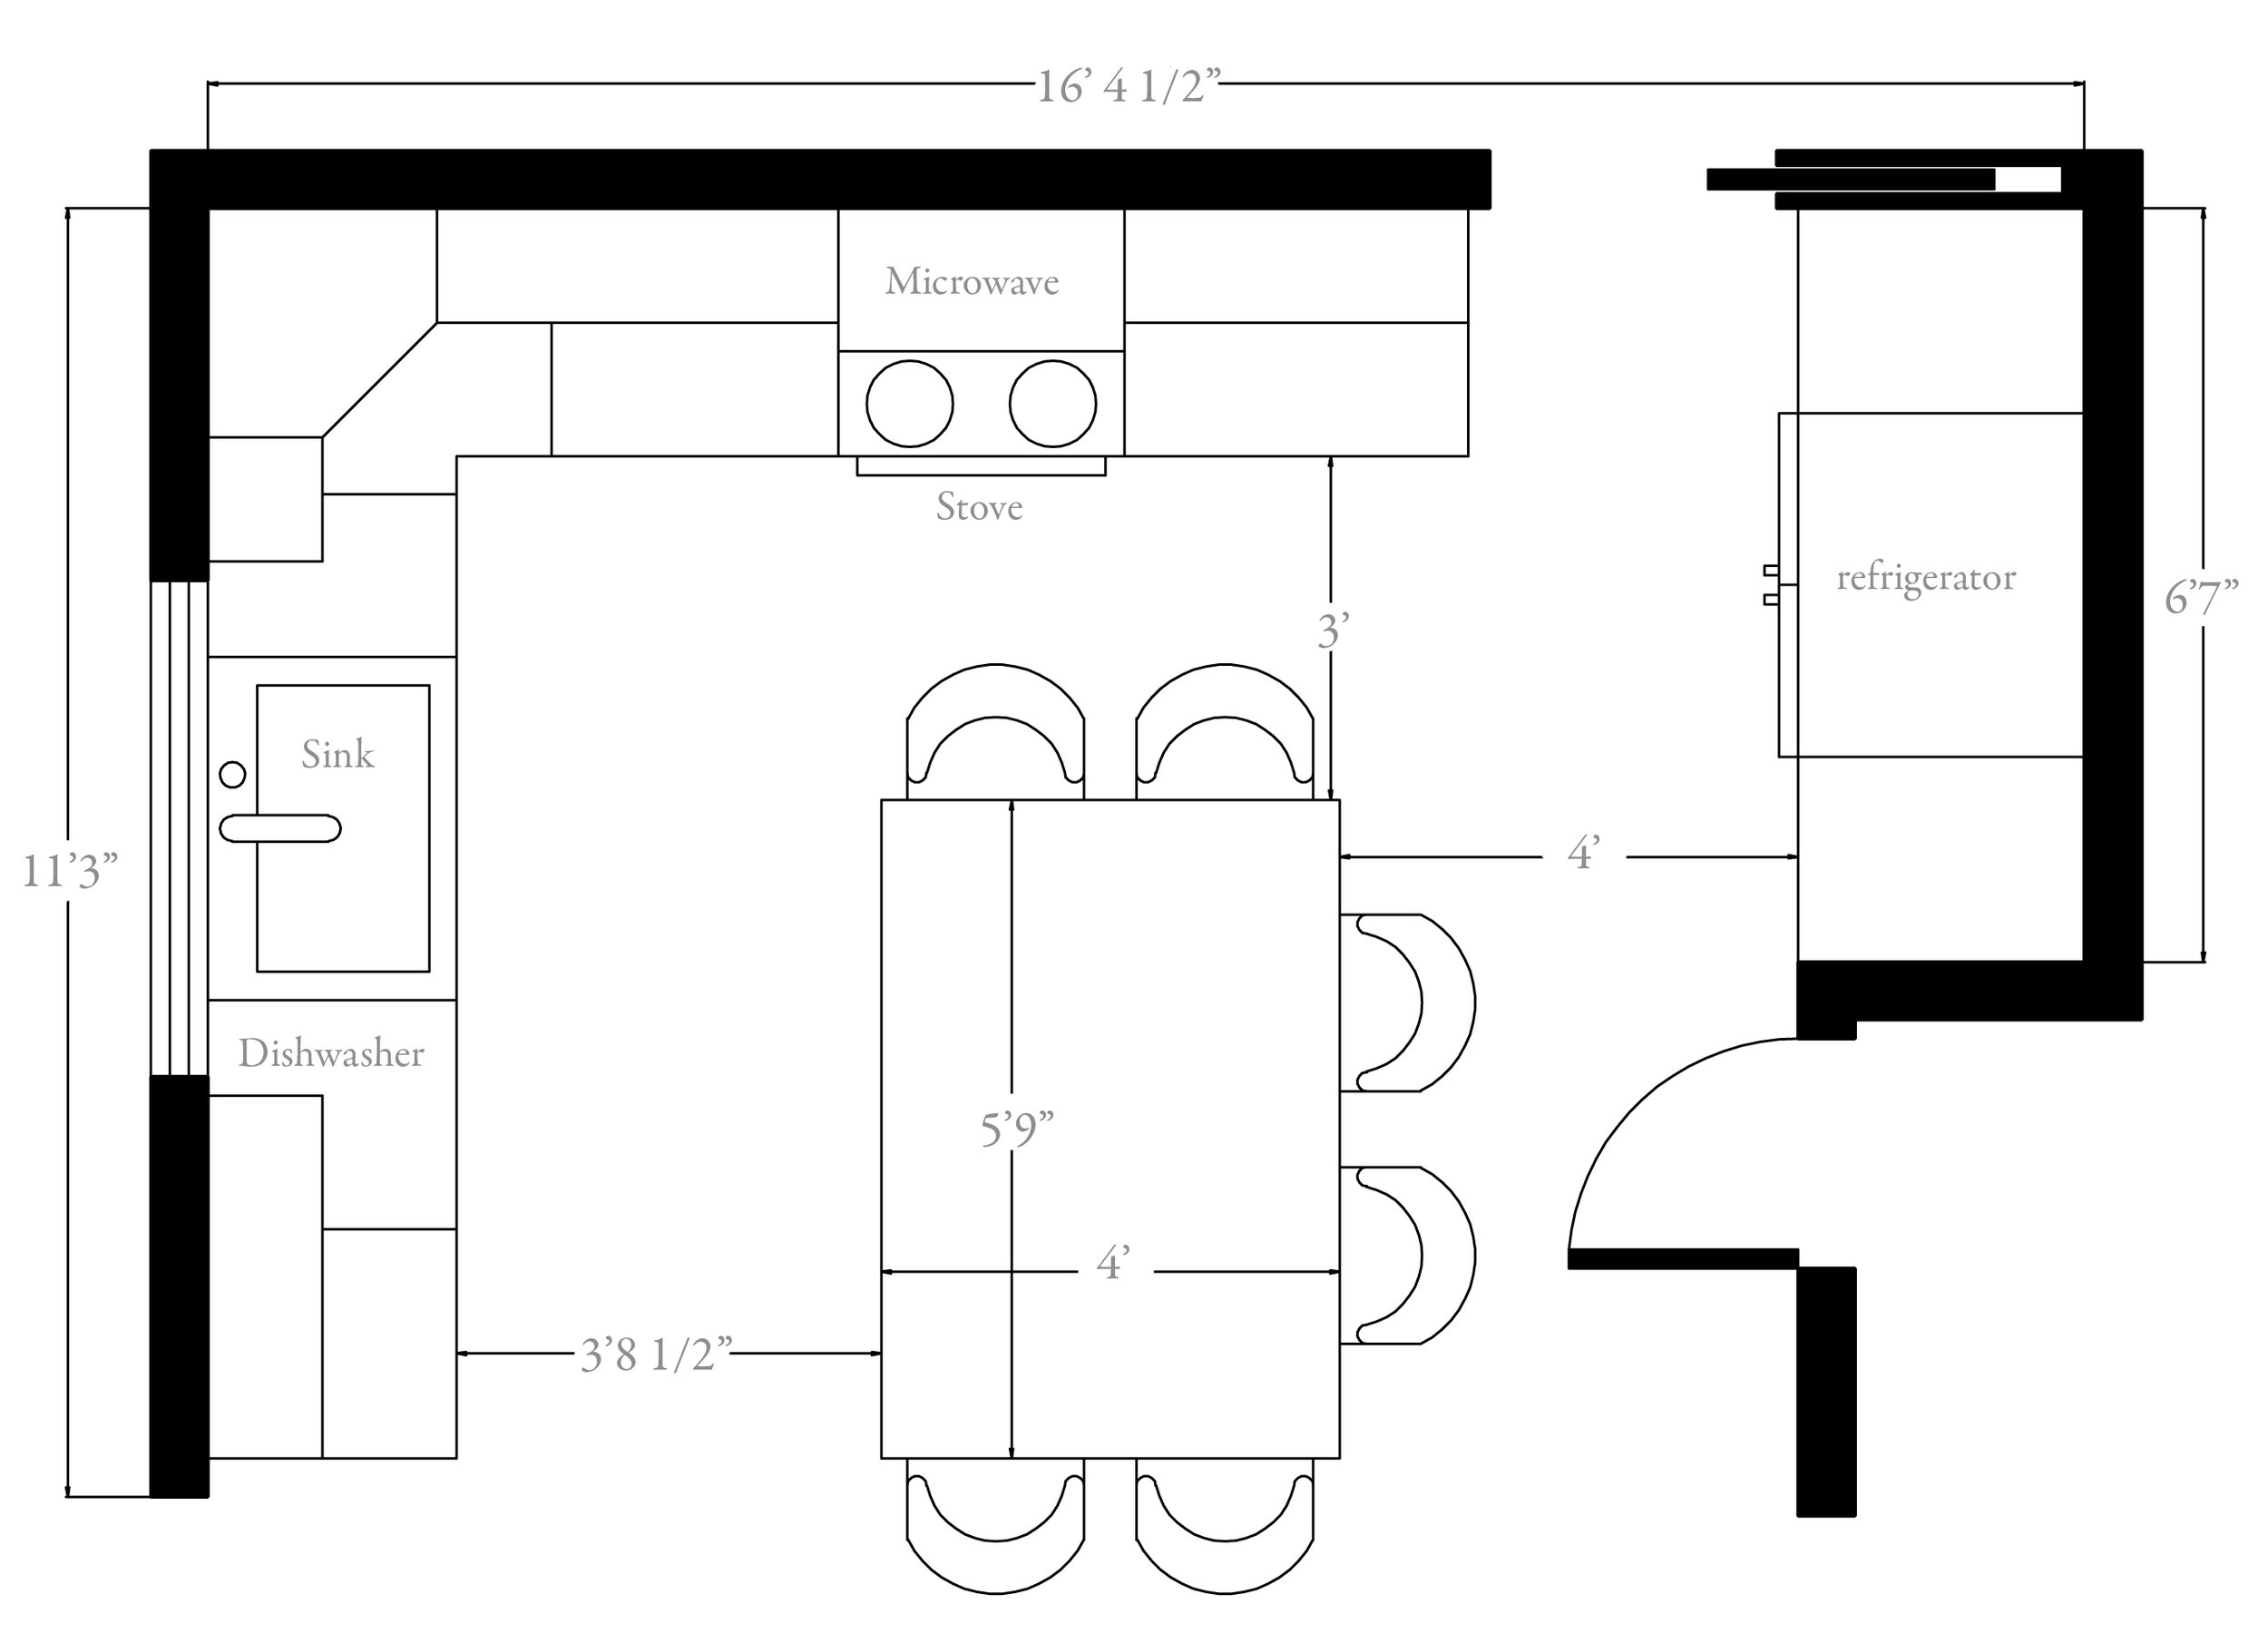 Kitchen Floor Plan-Layout1.jpg